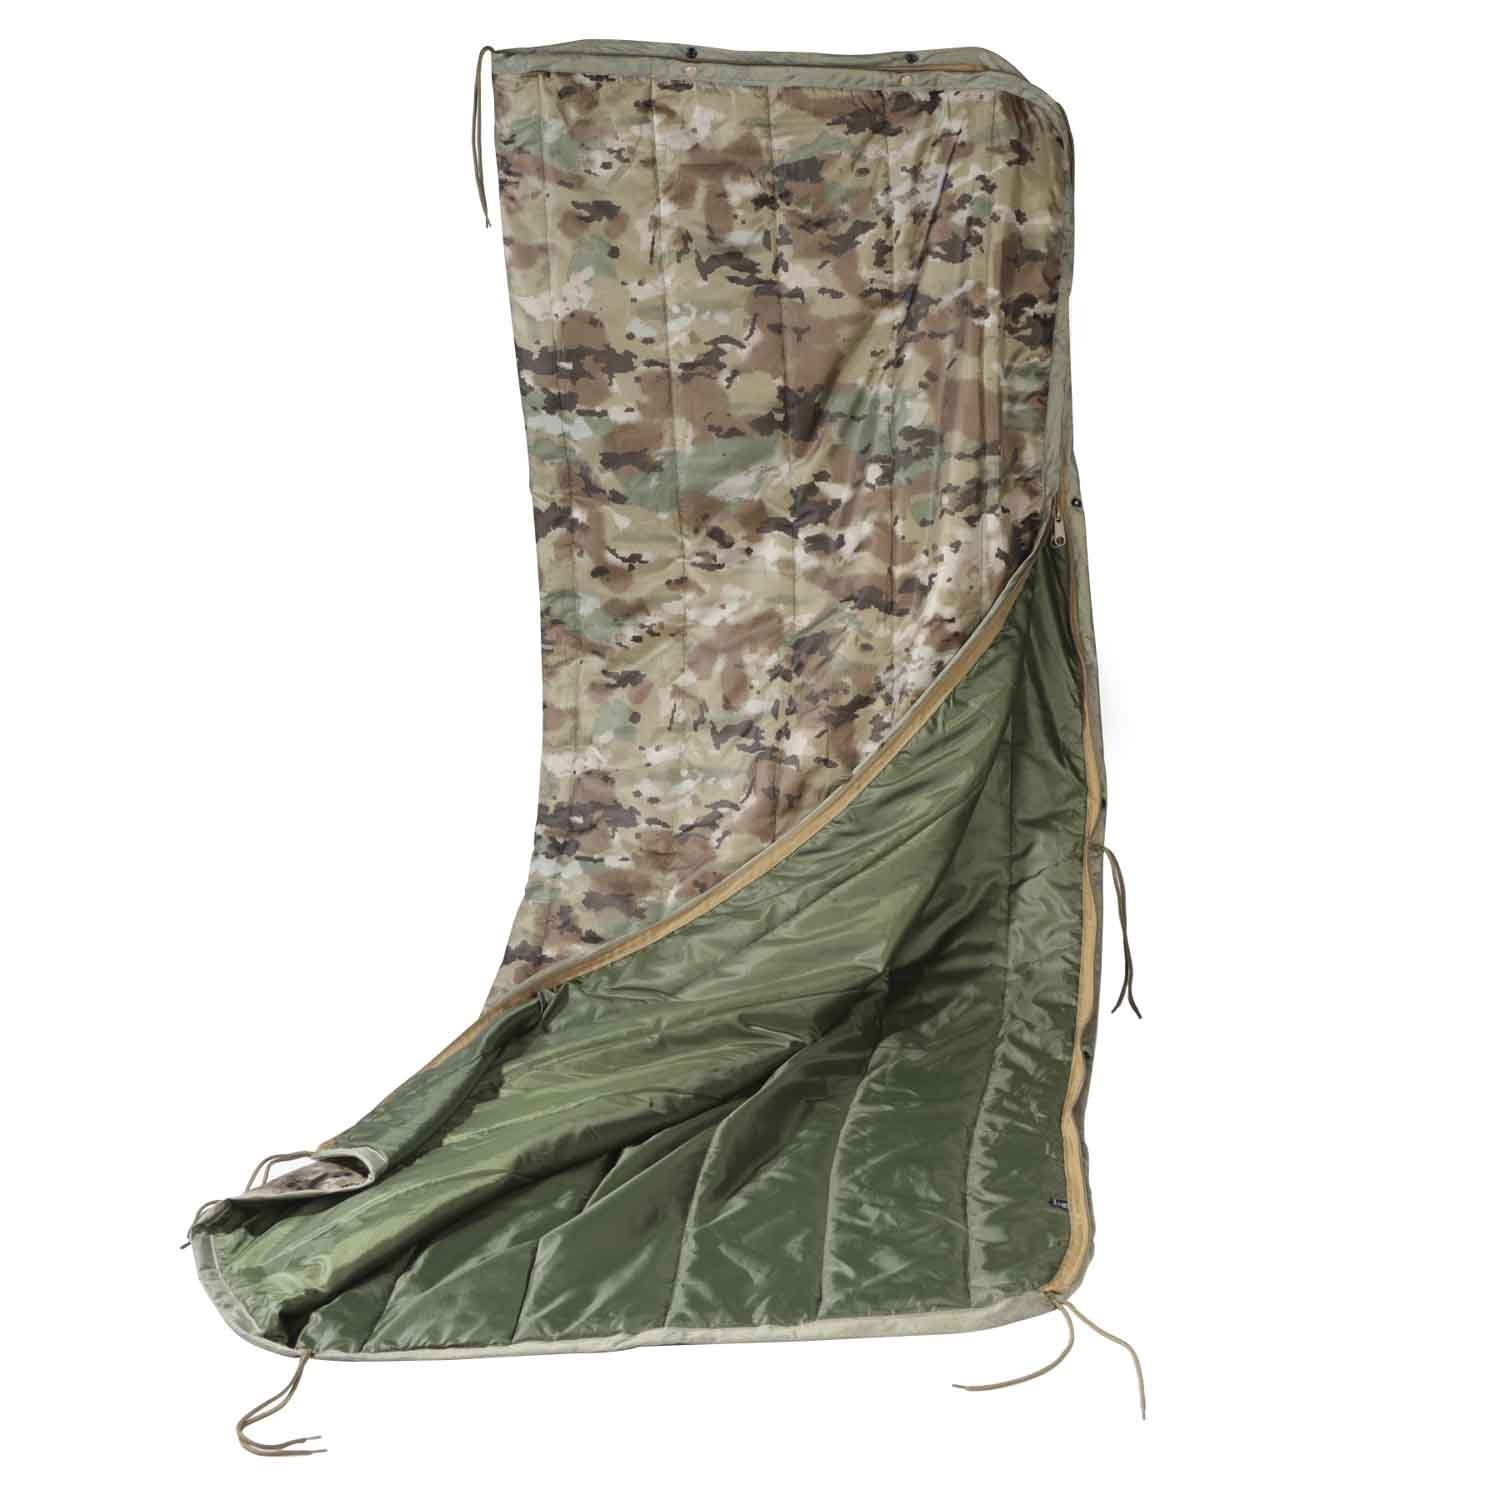 5ive Star Gear 3-N-1 Survival Woobie Blanket/Poncho Liner